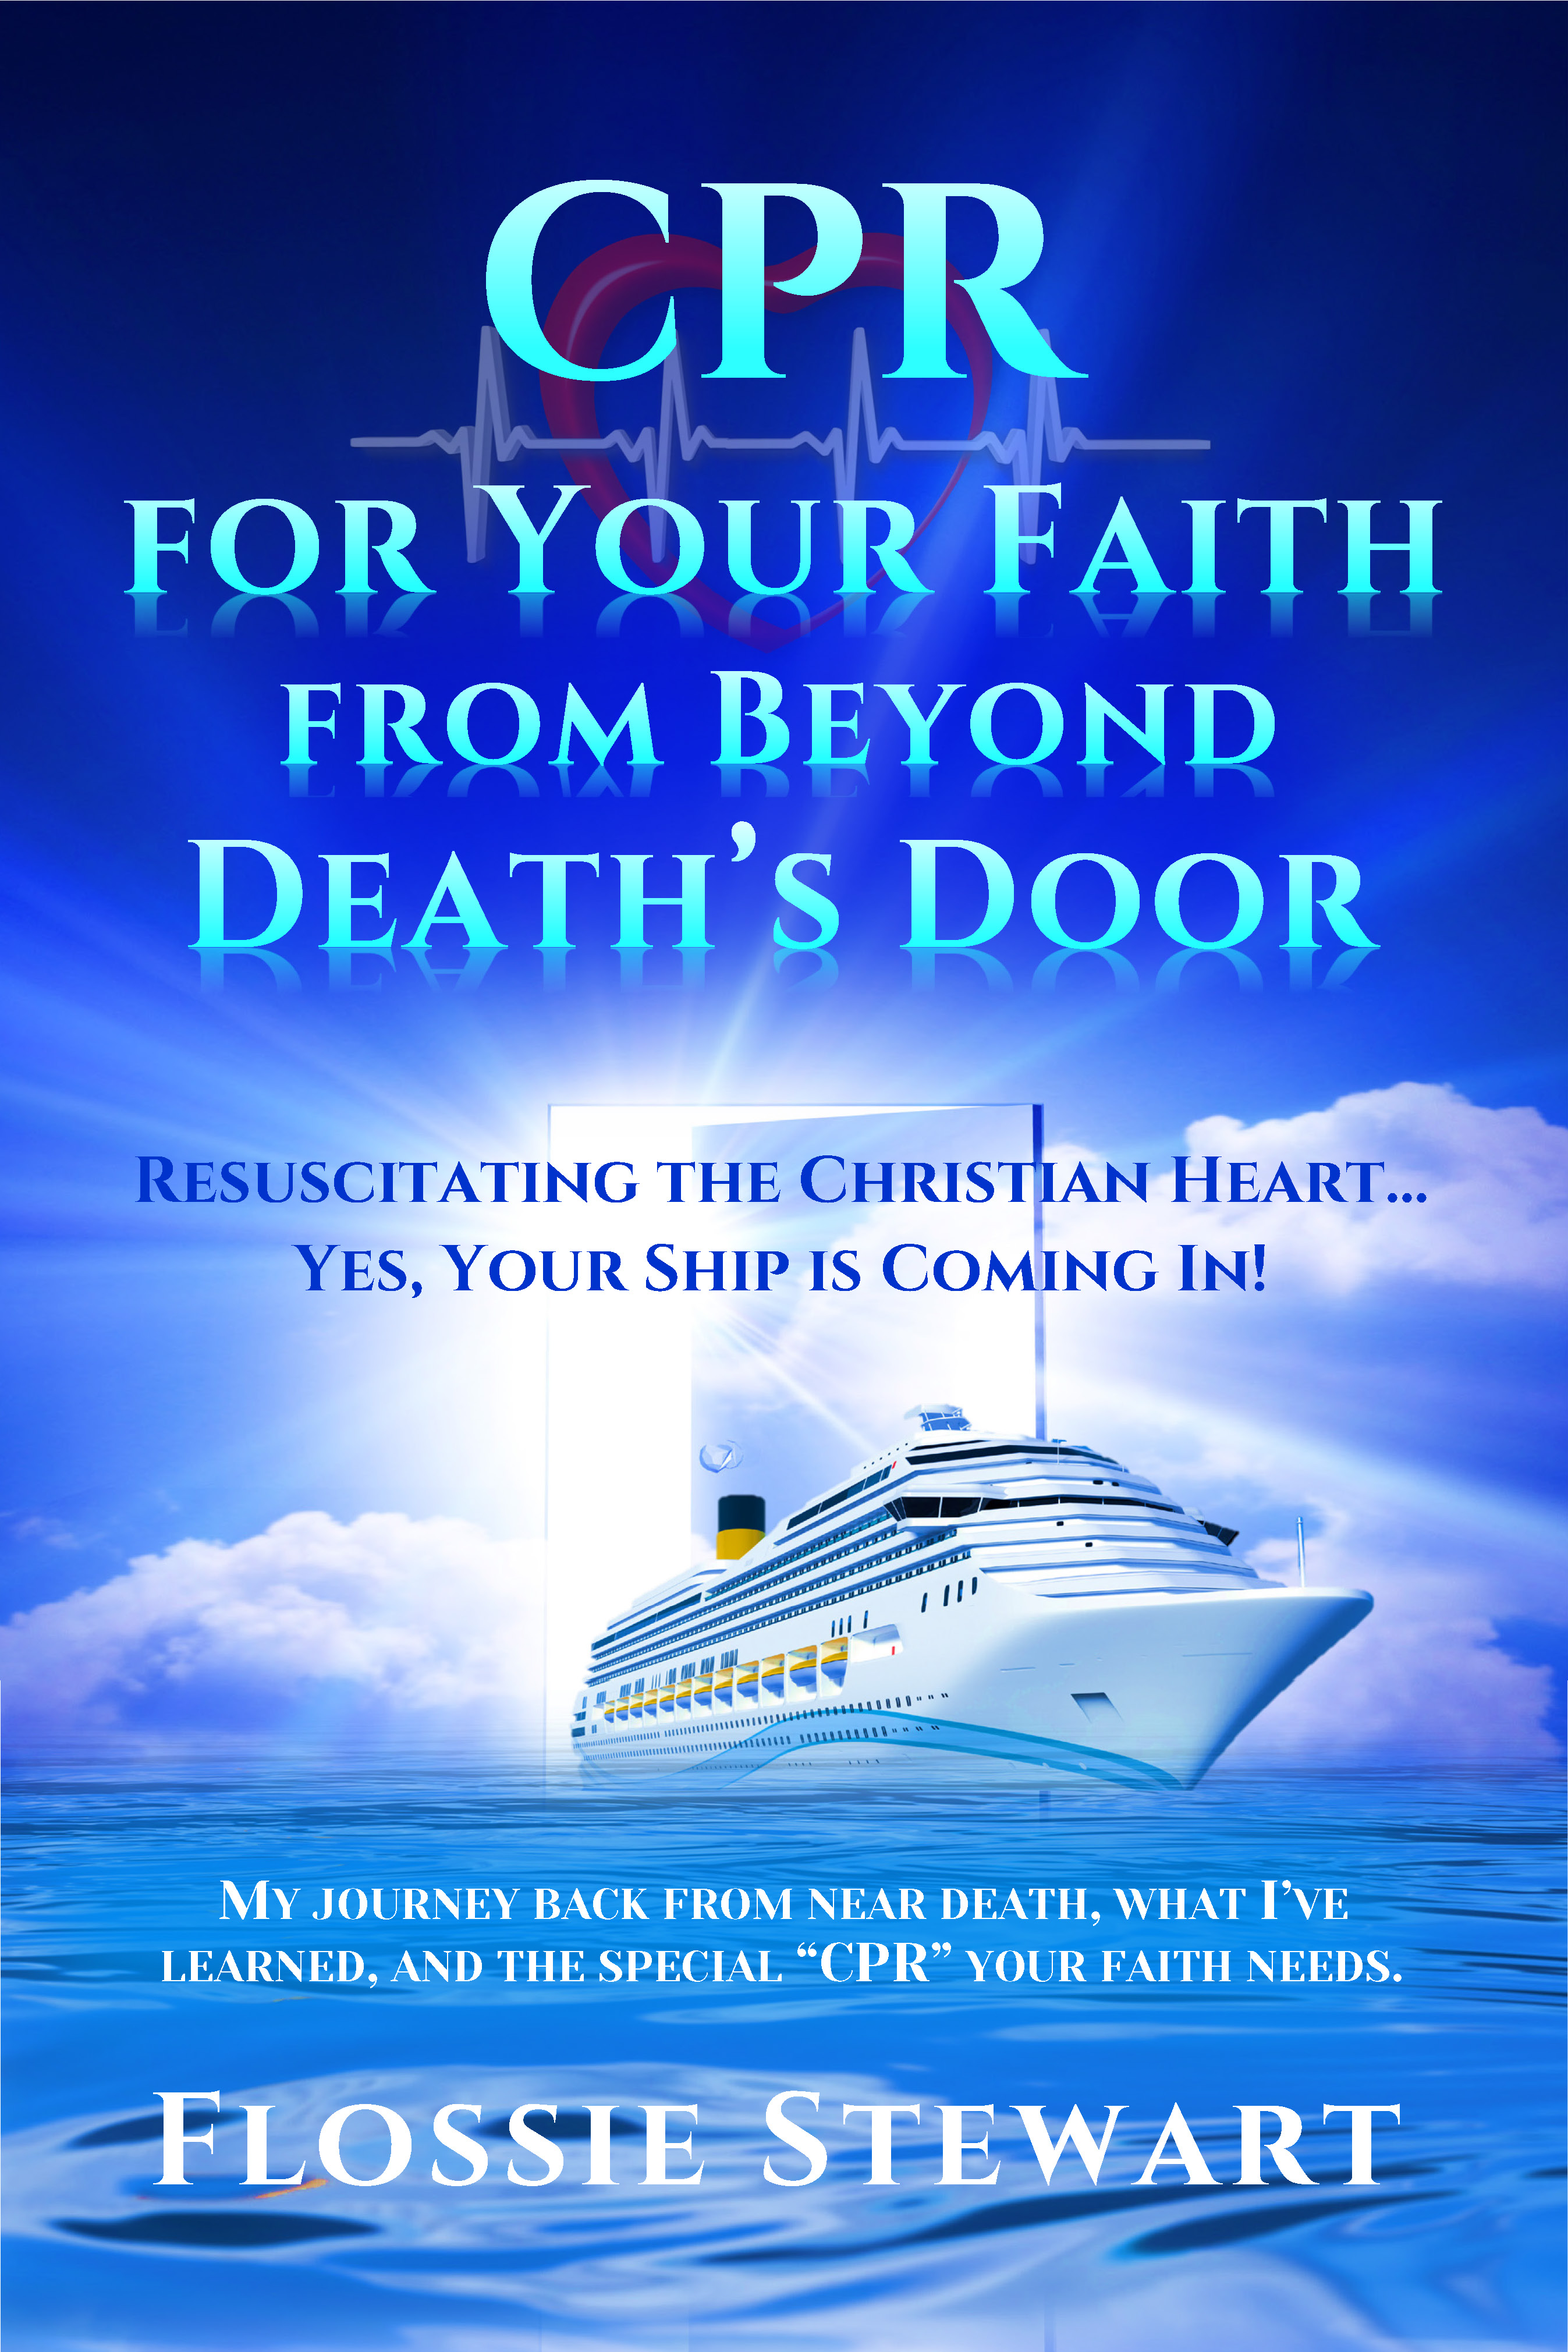 CPR4YourFaith_eBookCover_3-18-20_1